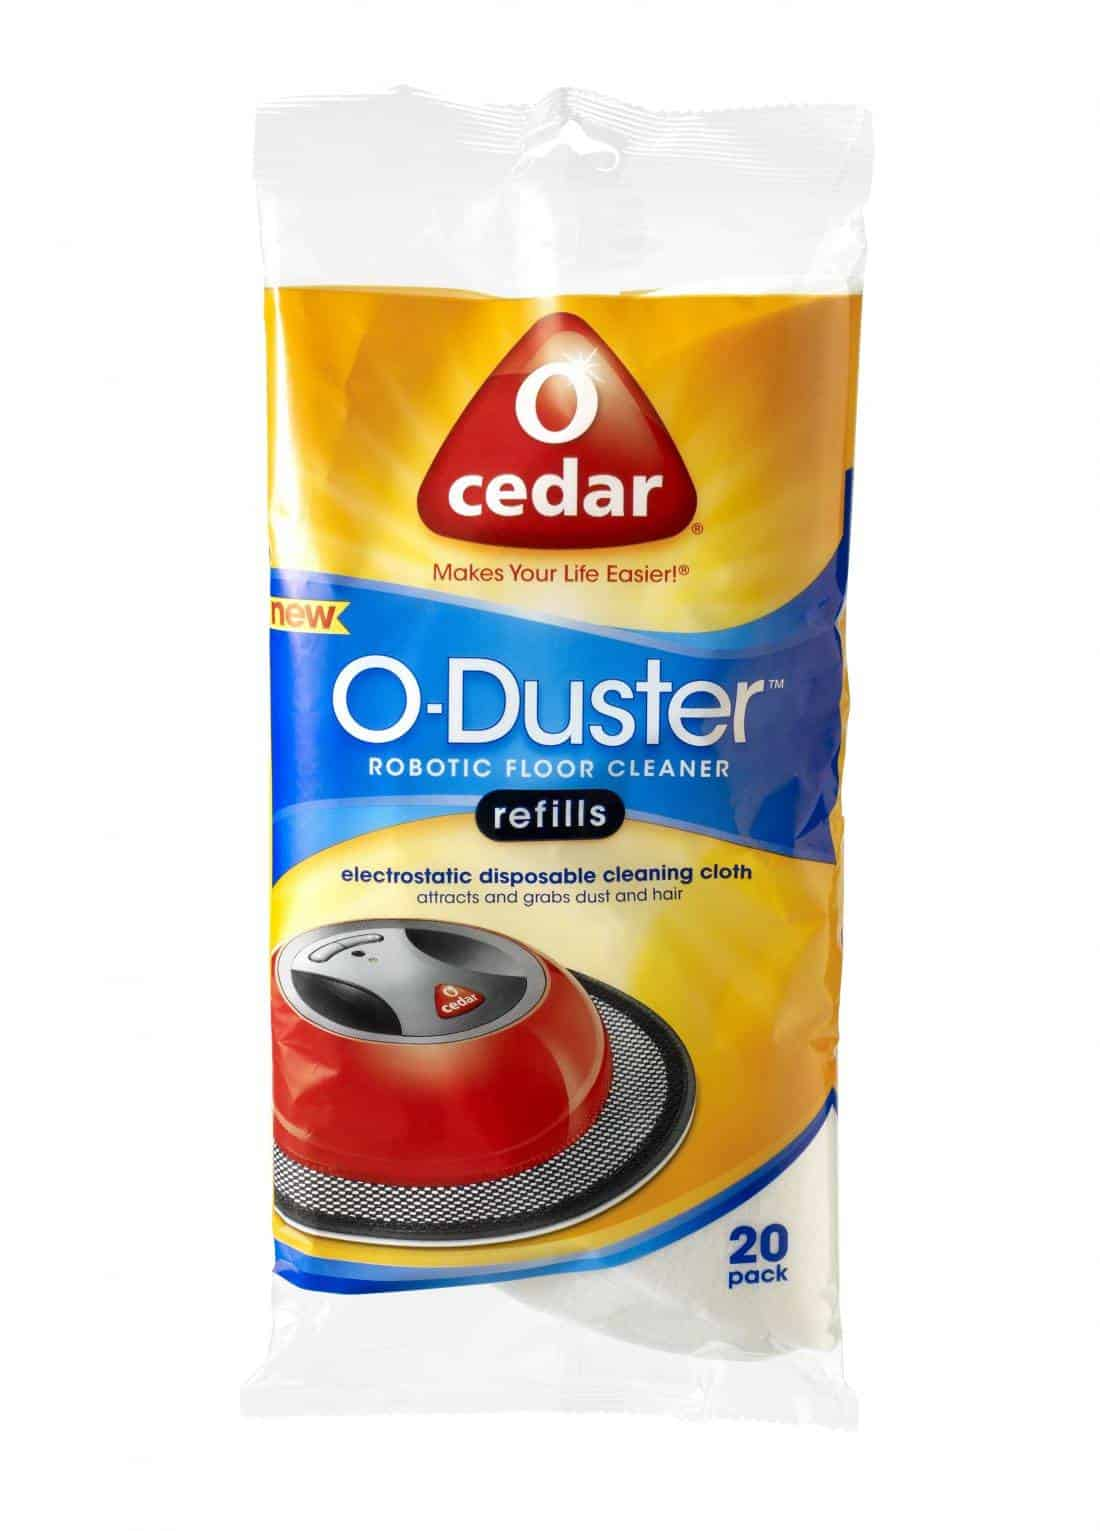 package of O-duster refills